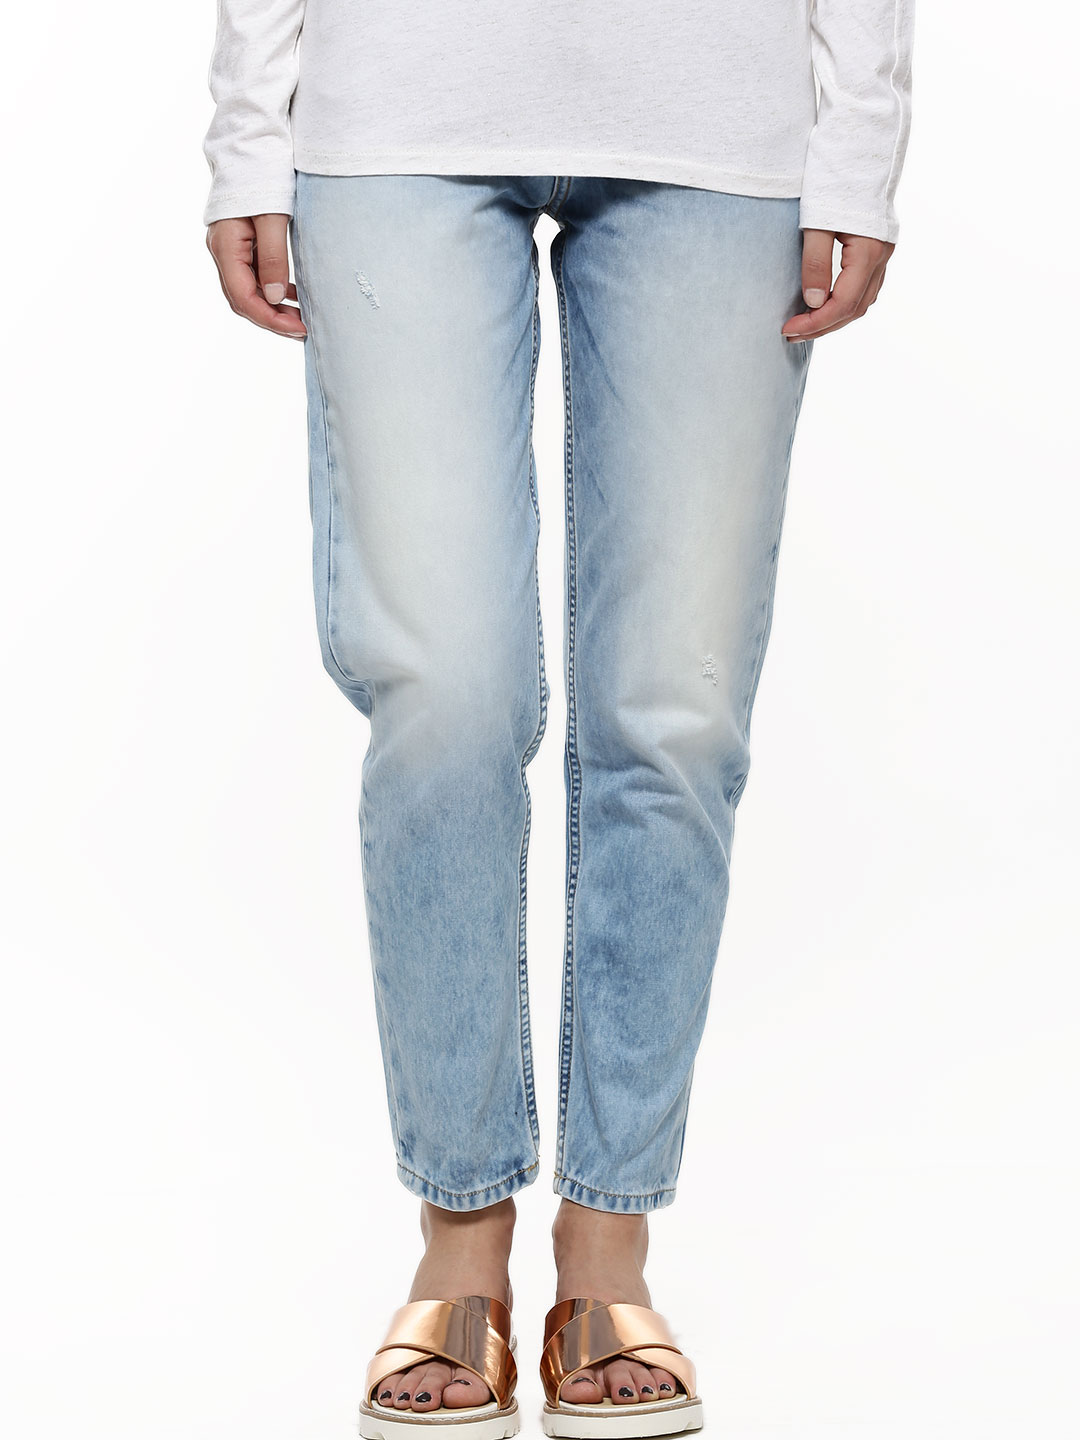 Voi Jeans Blue Ripped Straight Fit Jeans 1